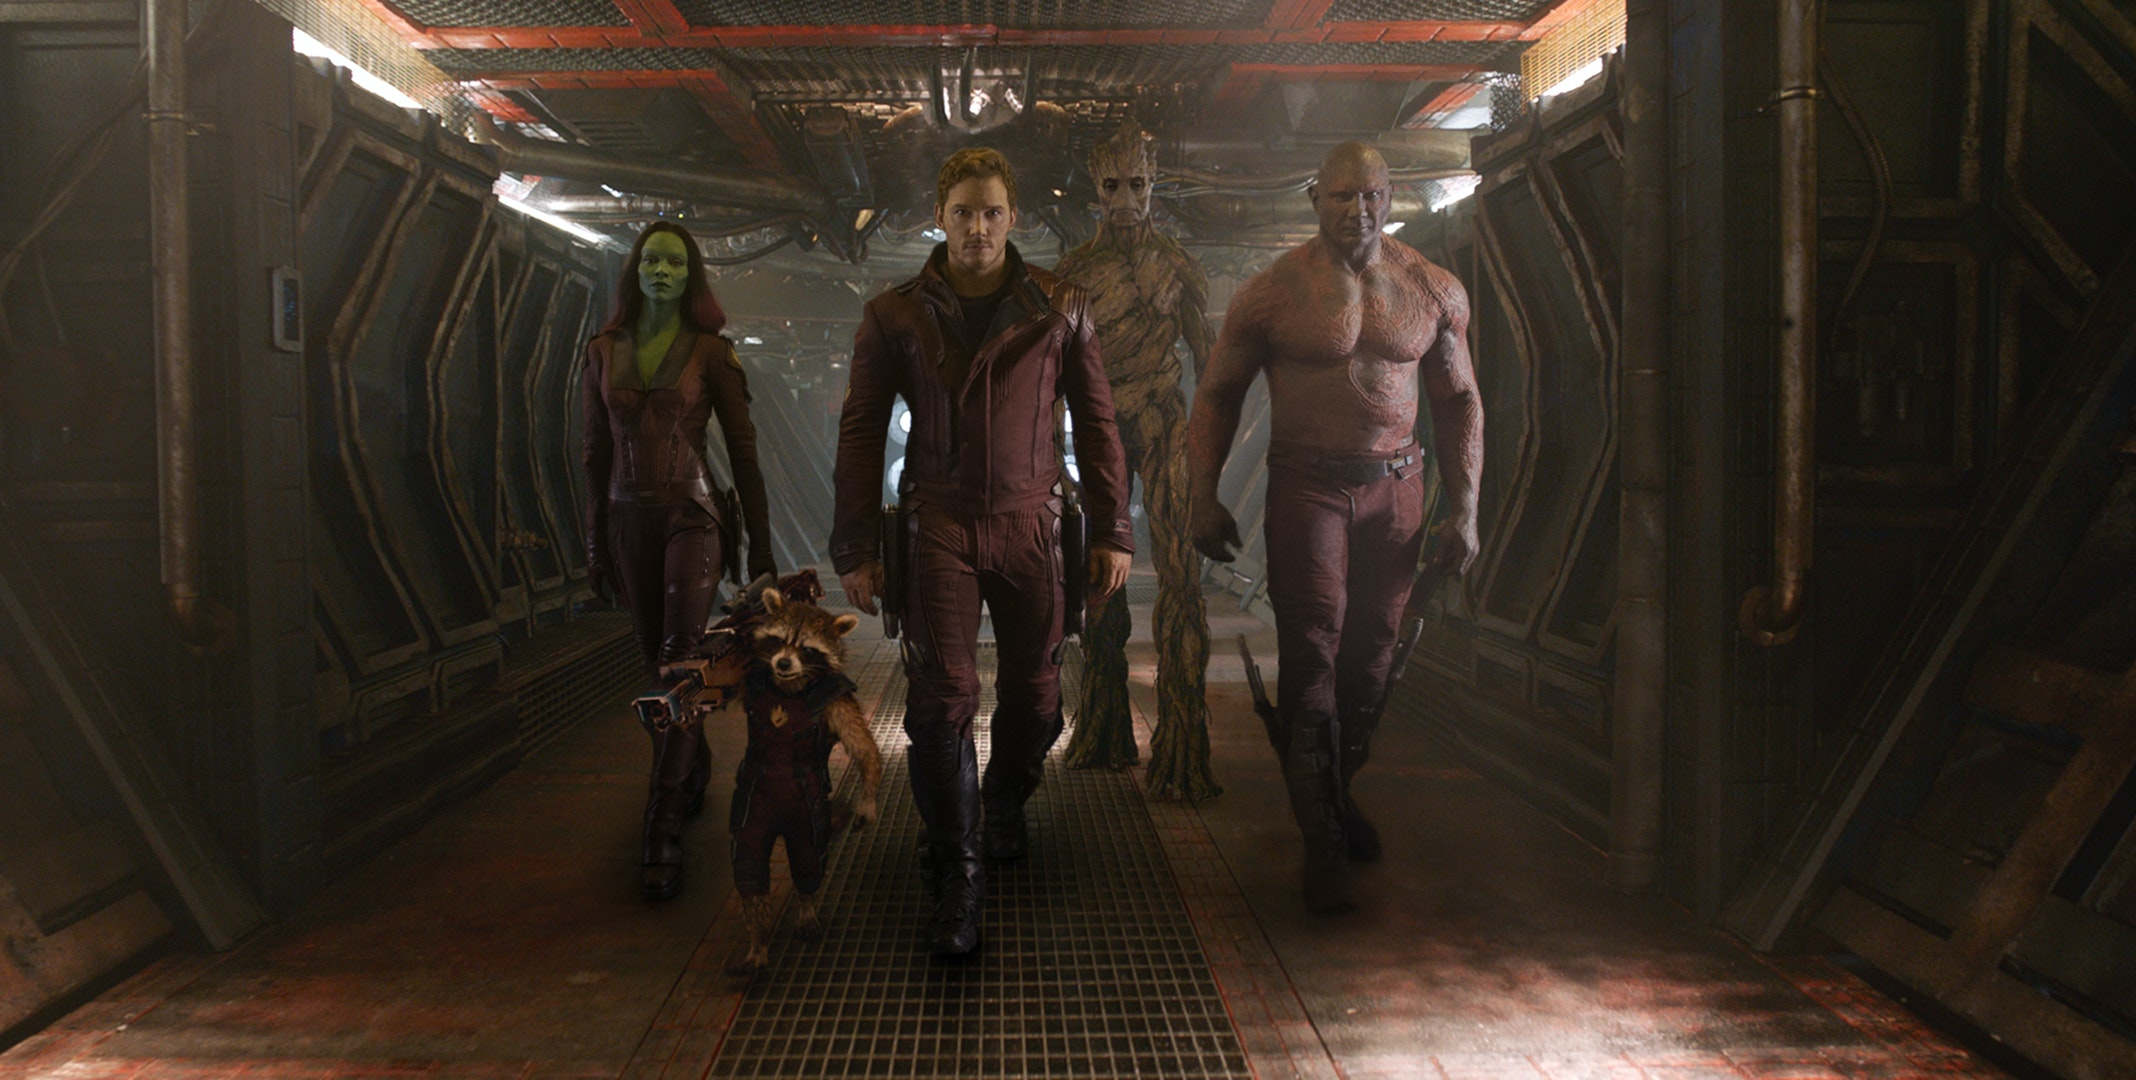 Guardians Of The Galaxy sweepstakes